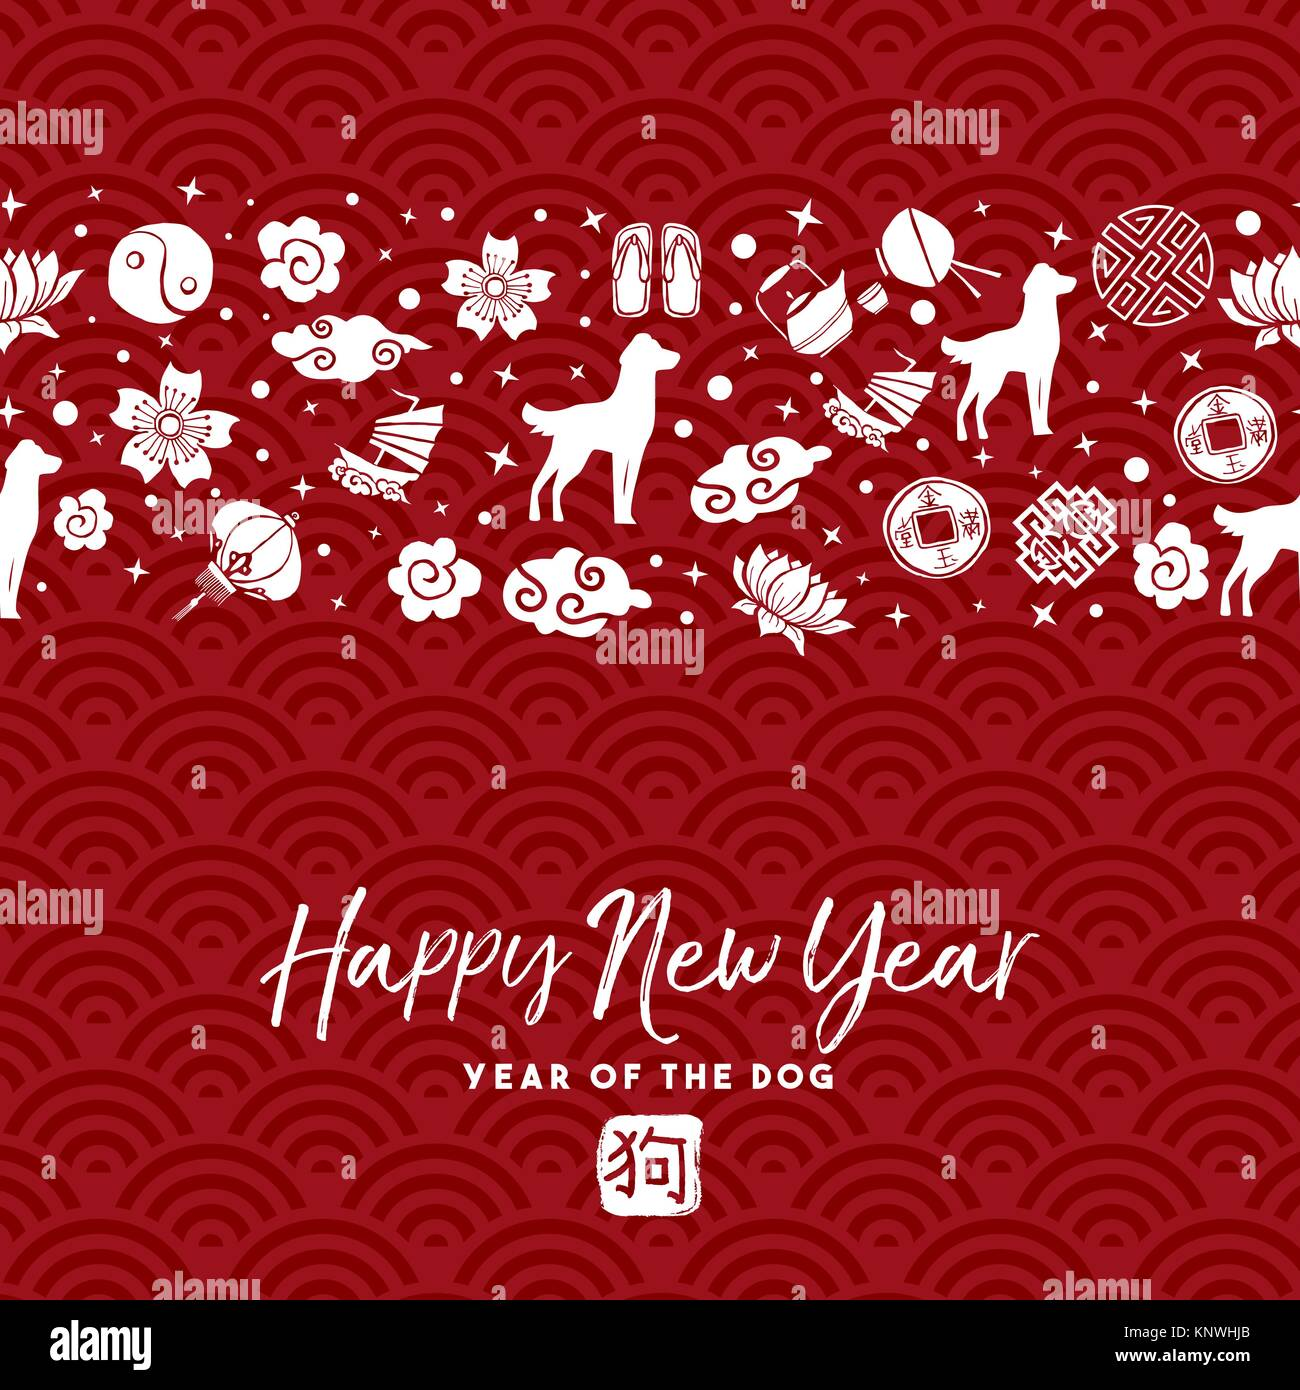 Happy chinese new year of the dog 2018 seamless pattern greeting happy chinese new year of the dog 2018 seamless pattern greeting card with traditional asian decoration eps10 vector kristyandbryce Choice Image